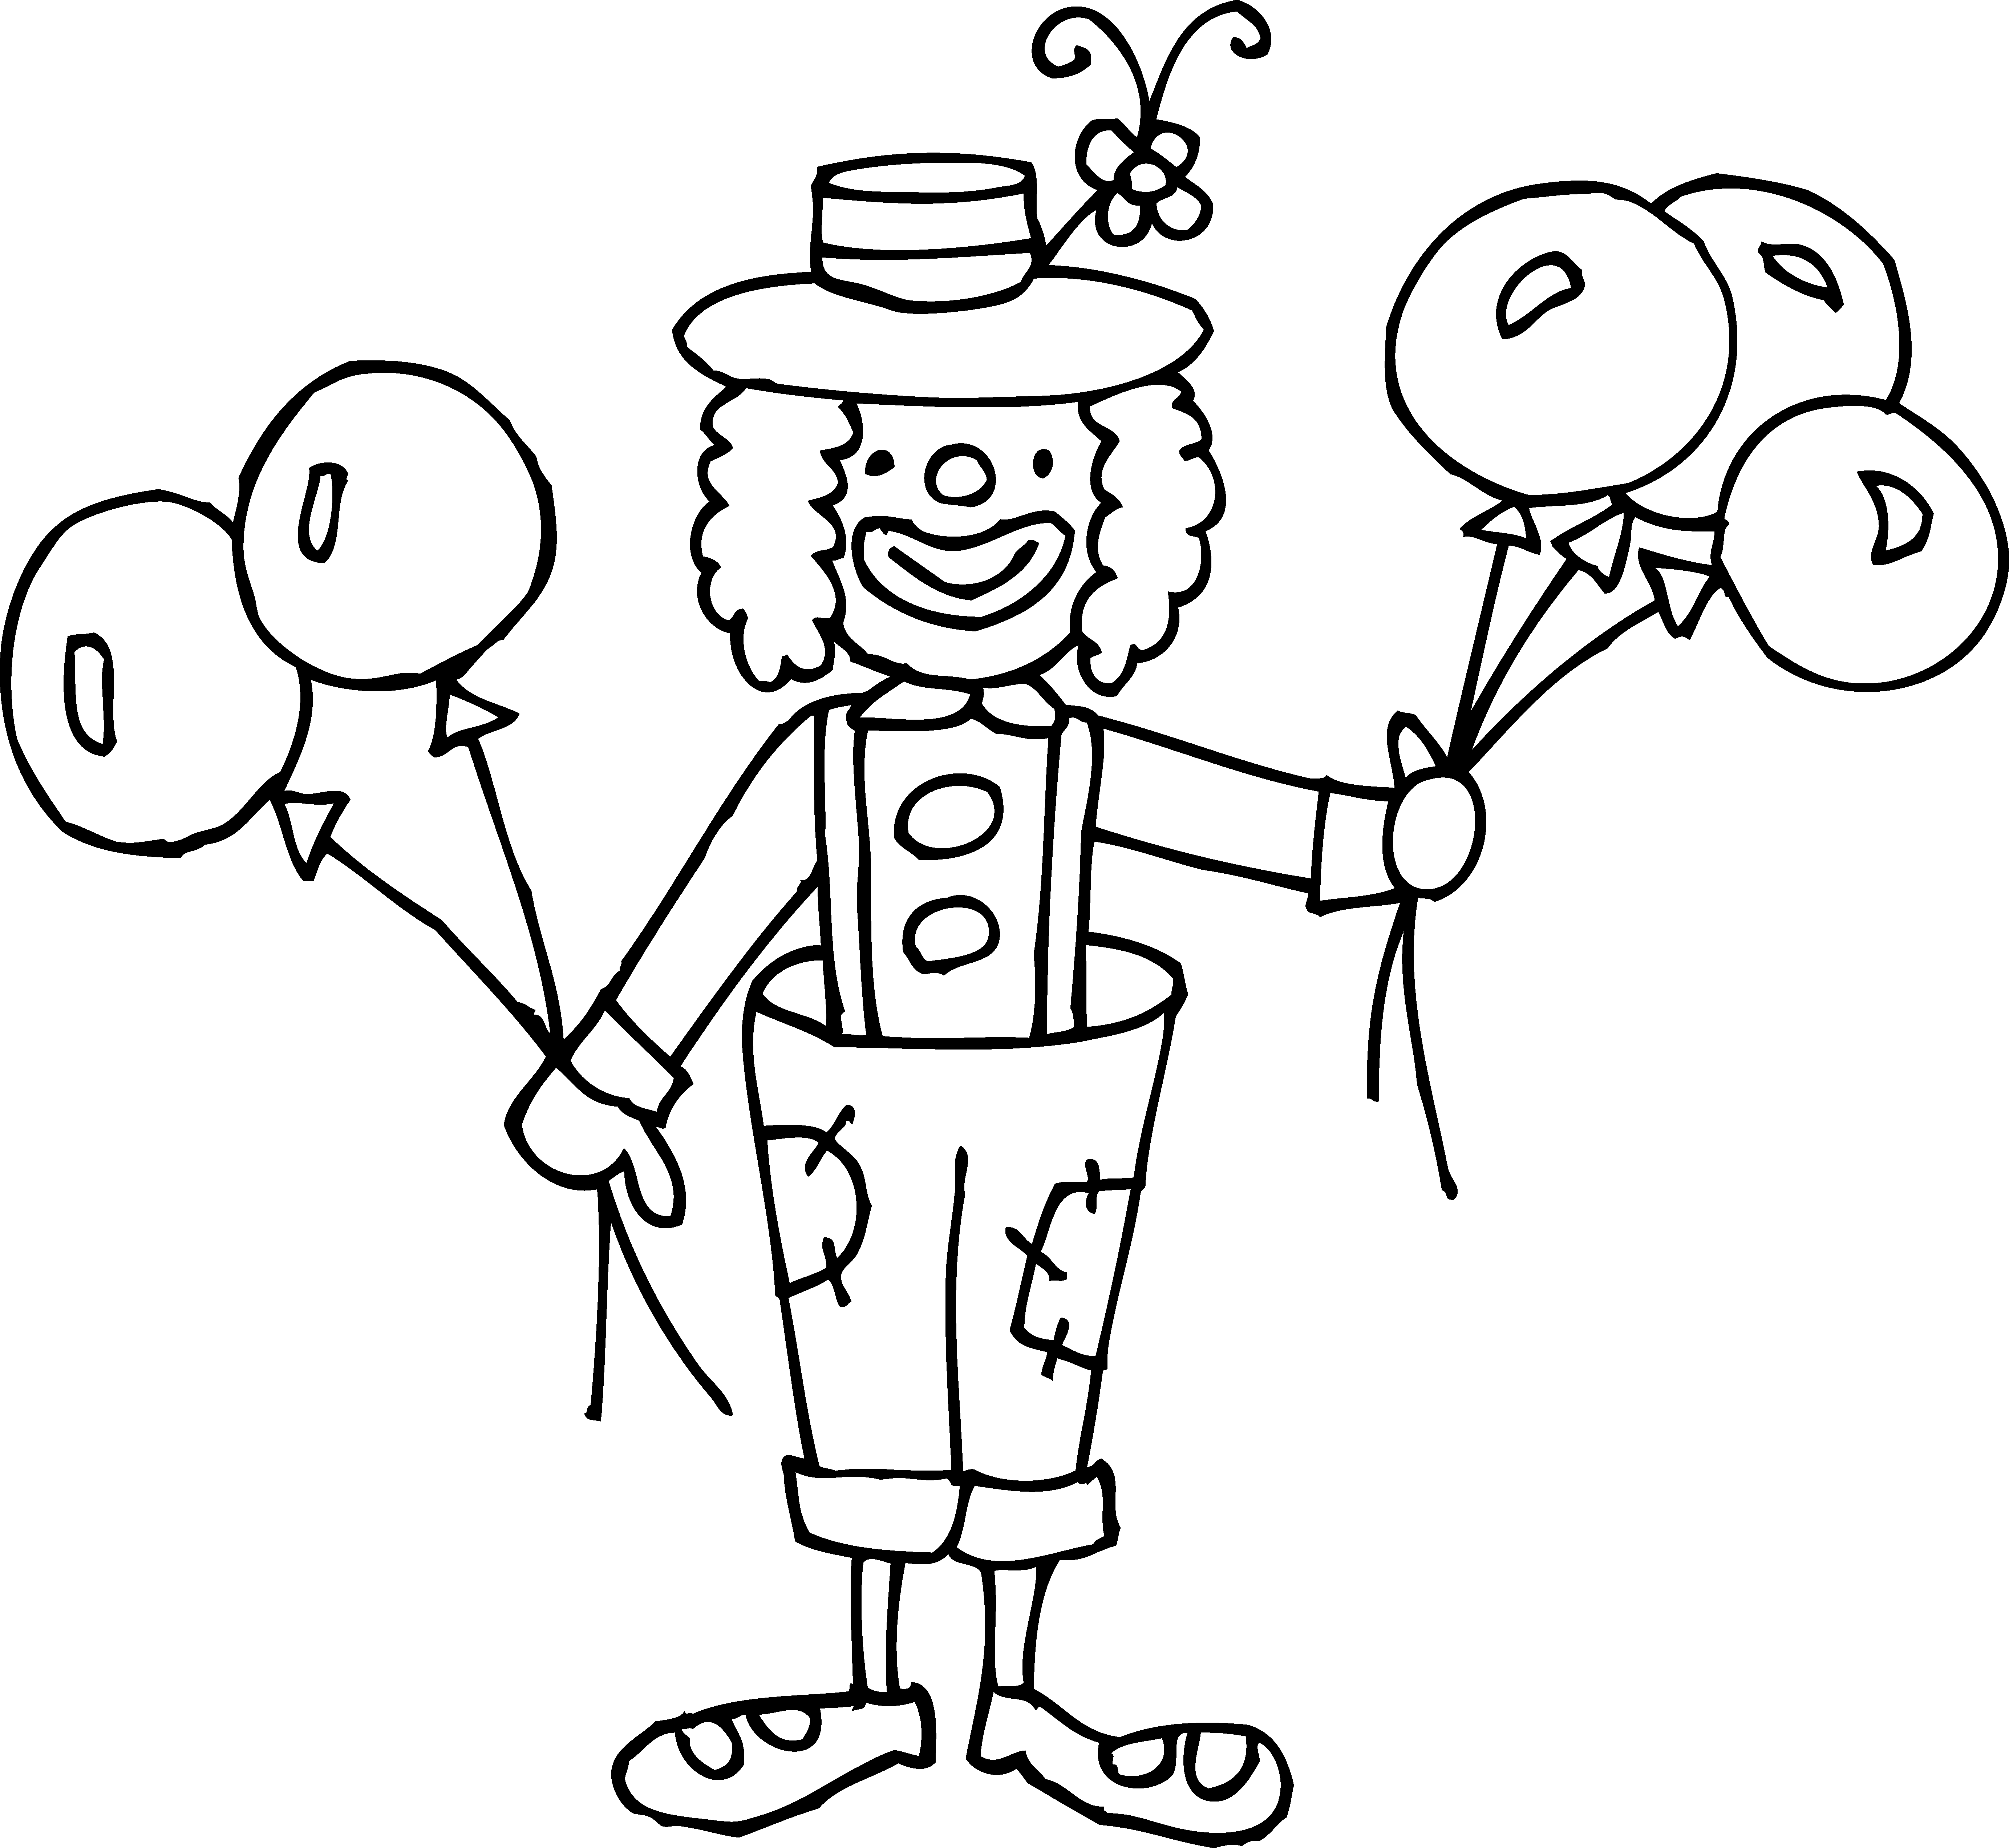 Clown and circus clipart black and white clip art freeuse download Free Clown Images, Download Free Clip Art, Free Clip Art on Clipart ... clip art freeuse download